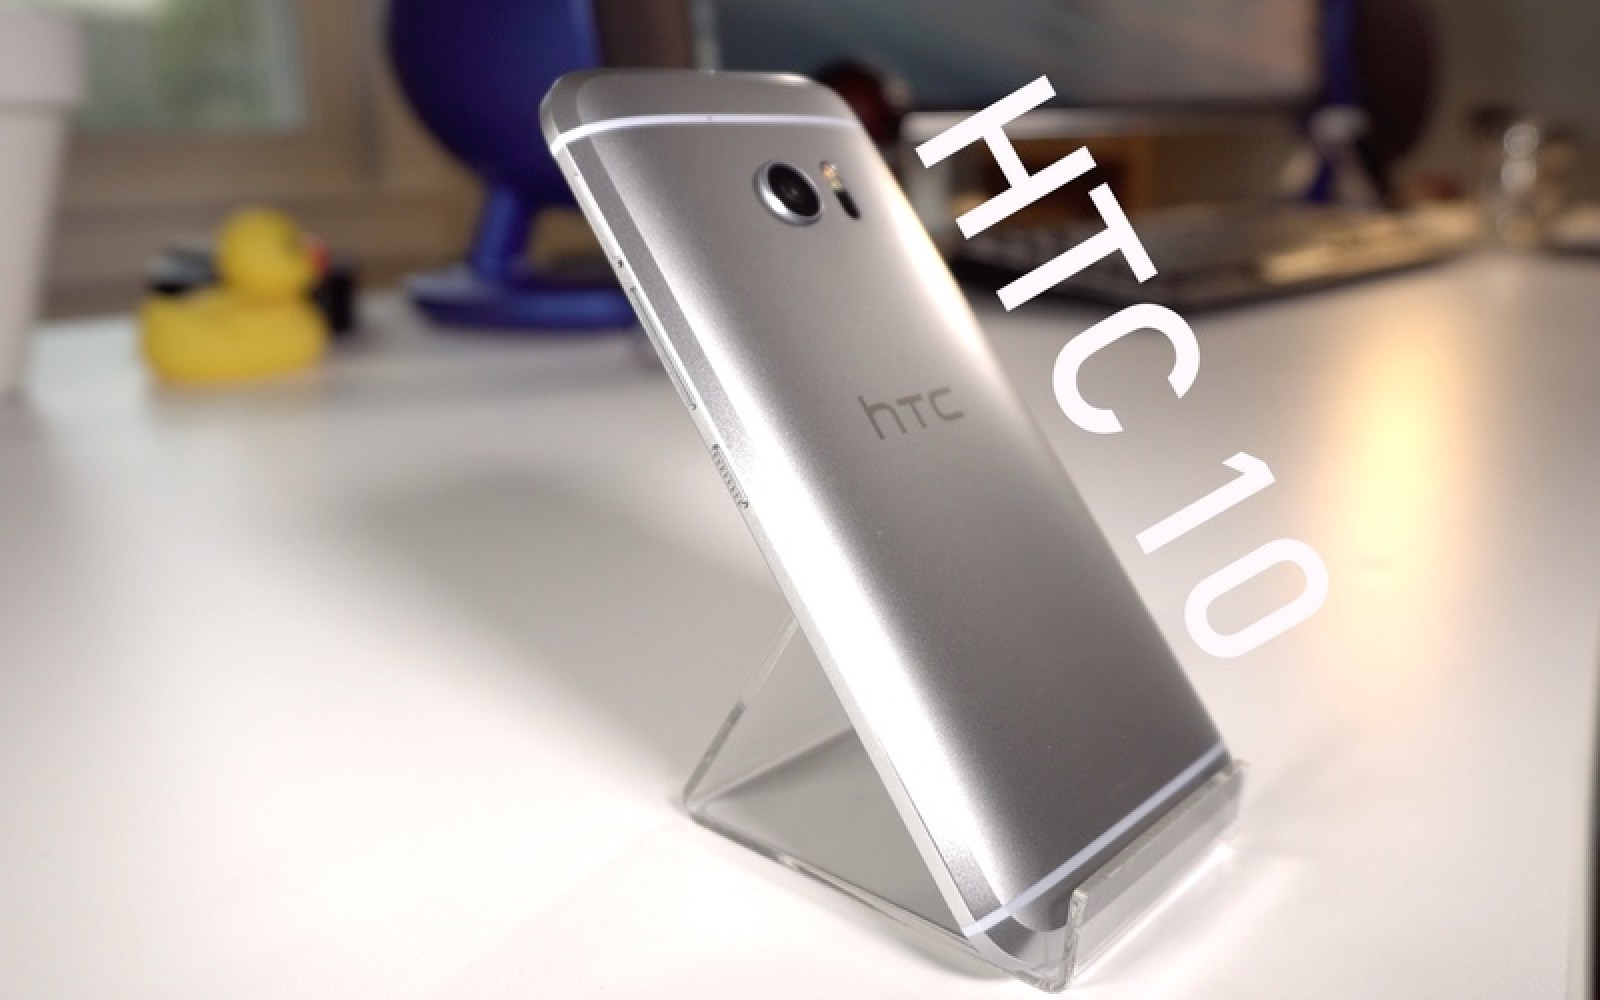 Google engineer: LG G5 and HTC 10 are not USB Type C compliant